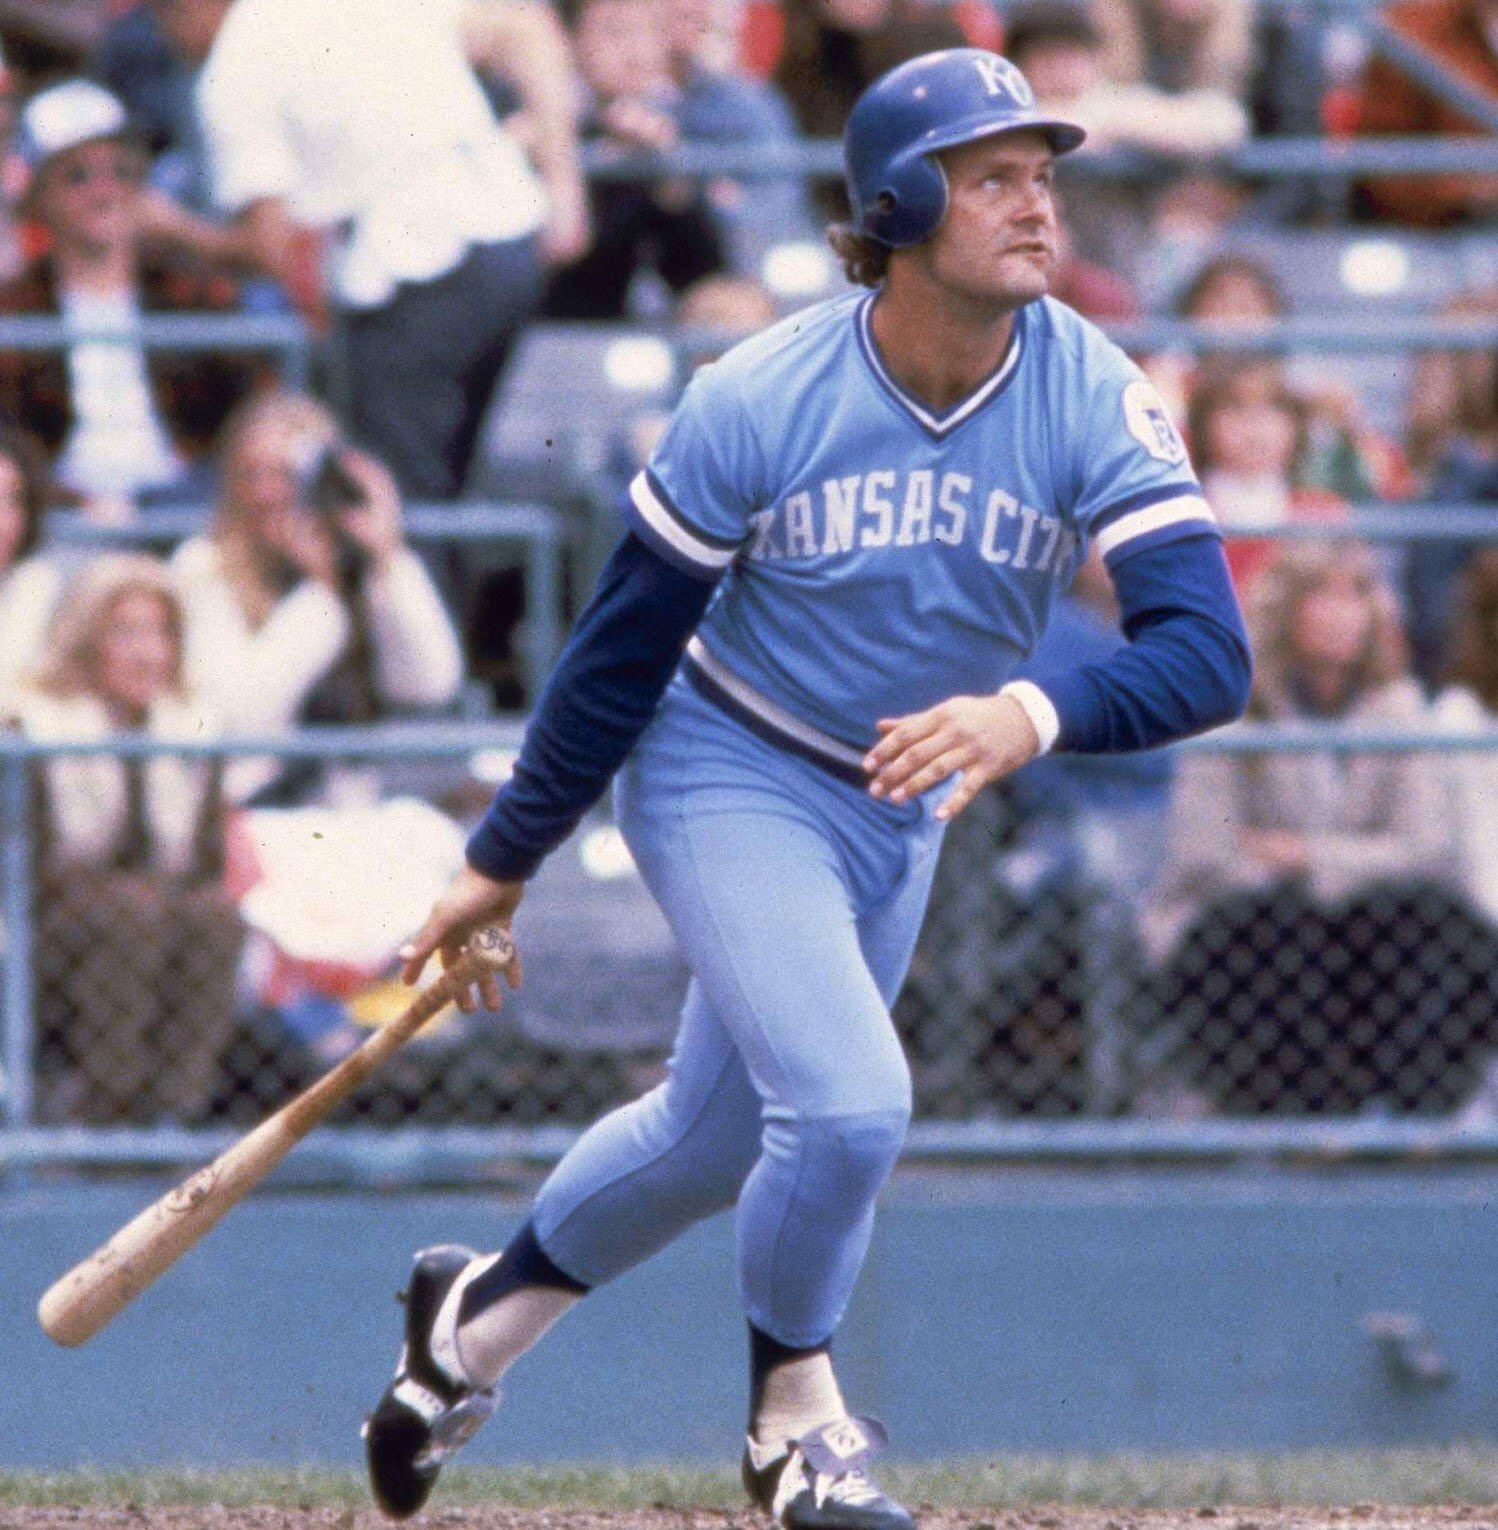 Happy Birthday to George Brett who turns 64 today!